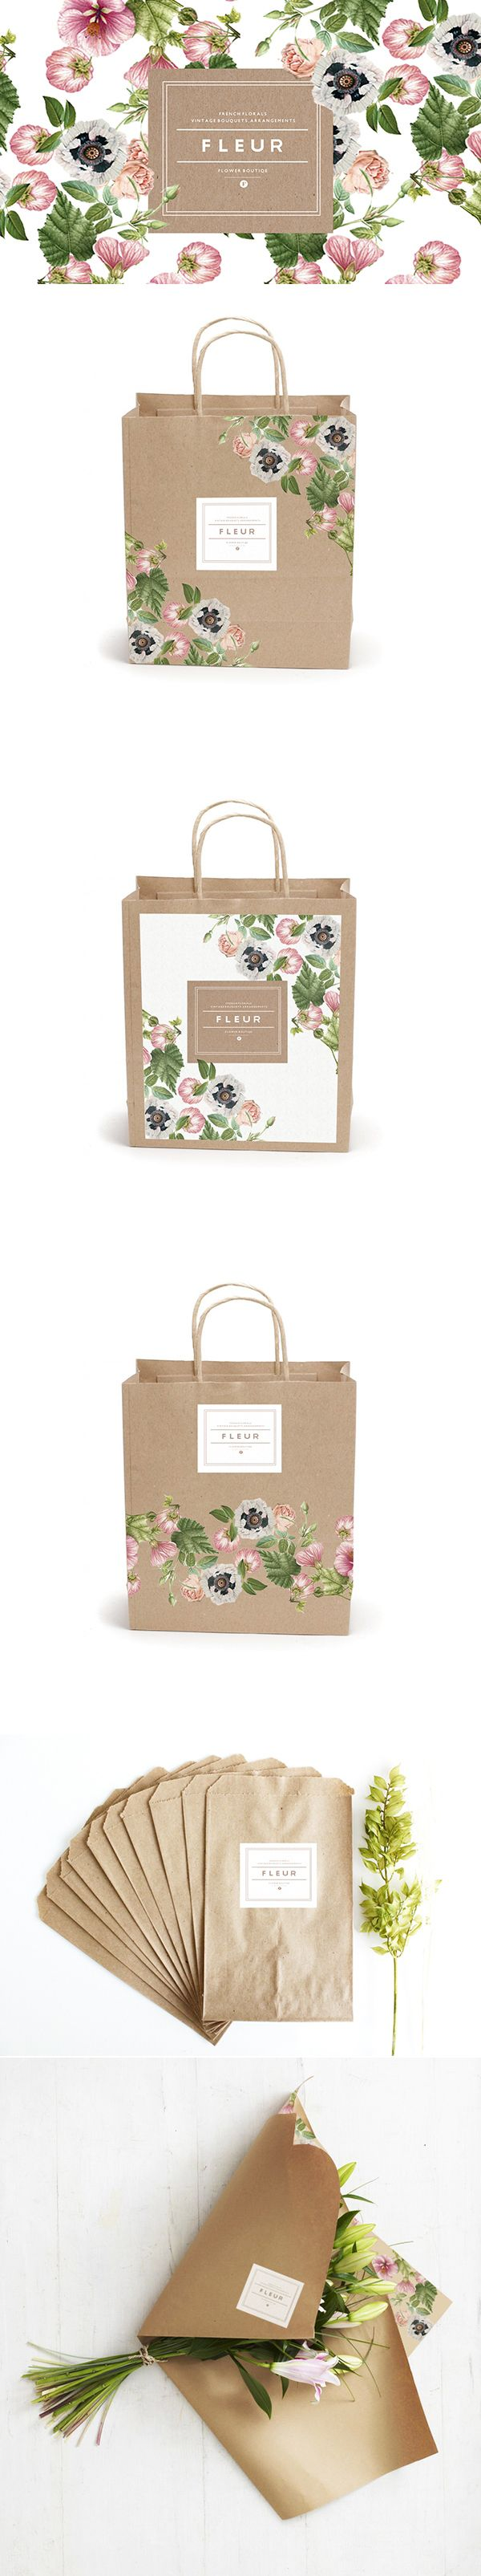 The feminine floral design looks beautiful on the earthy tone of brown kraft paper. The perfect bag for a florist! #bag #paperbag #baginspiration #retailbag